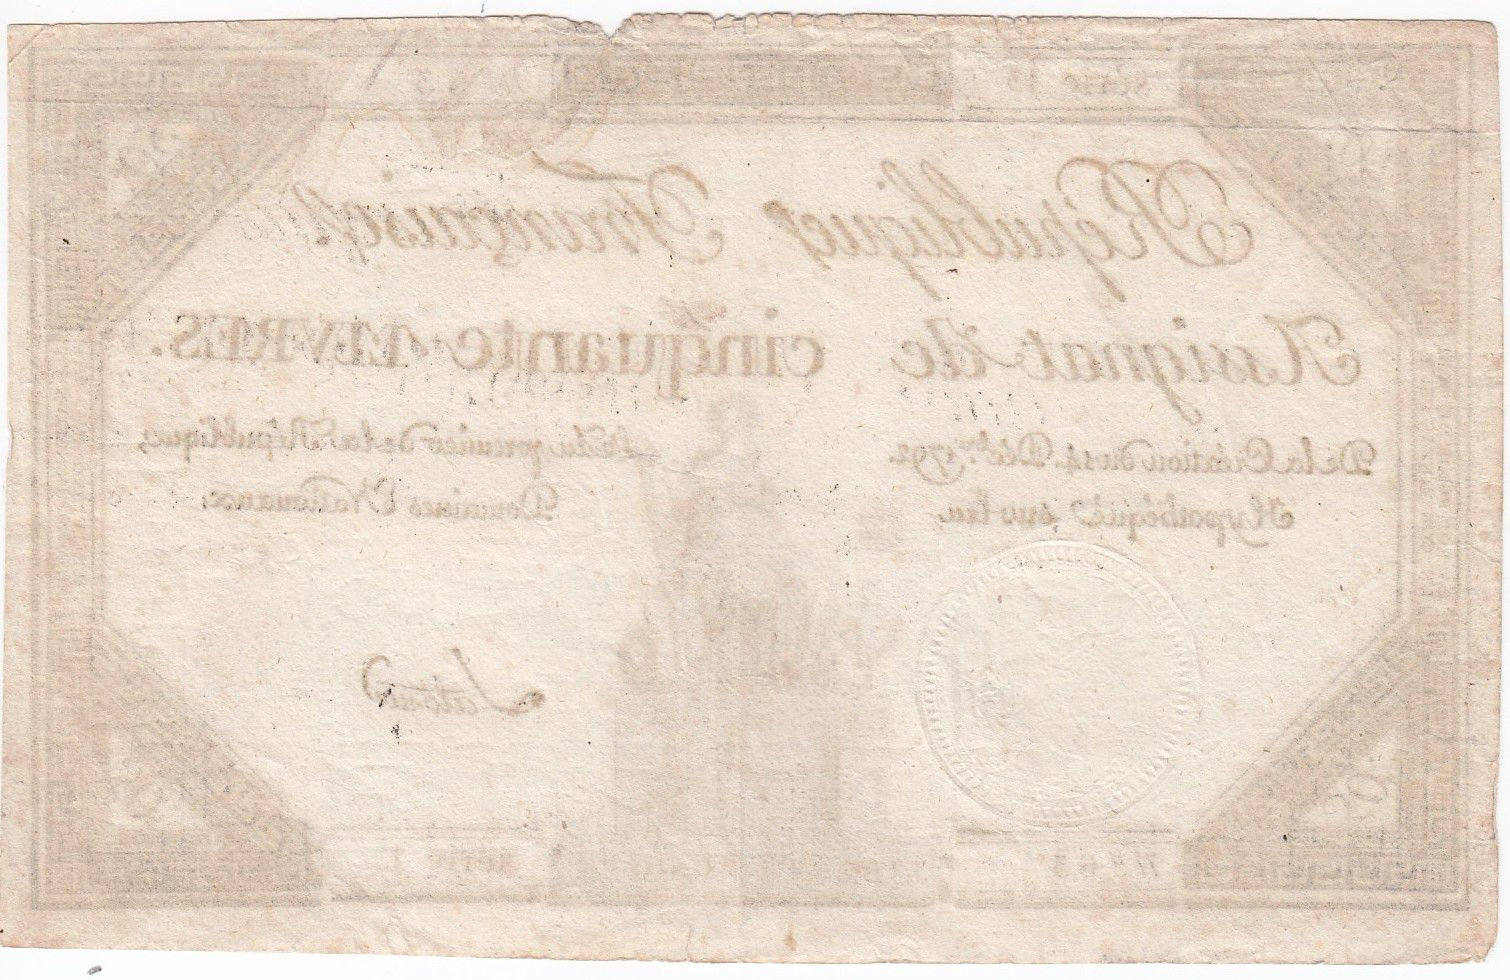 France 50 Livres France seated - 14-12-1792 - Sign. Latour - VF